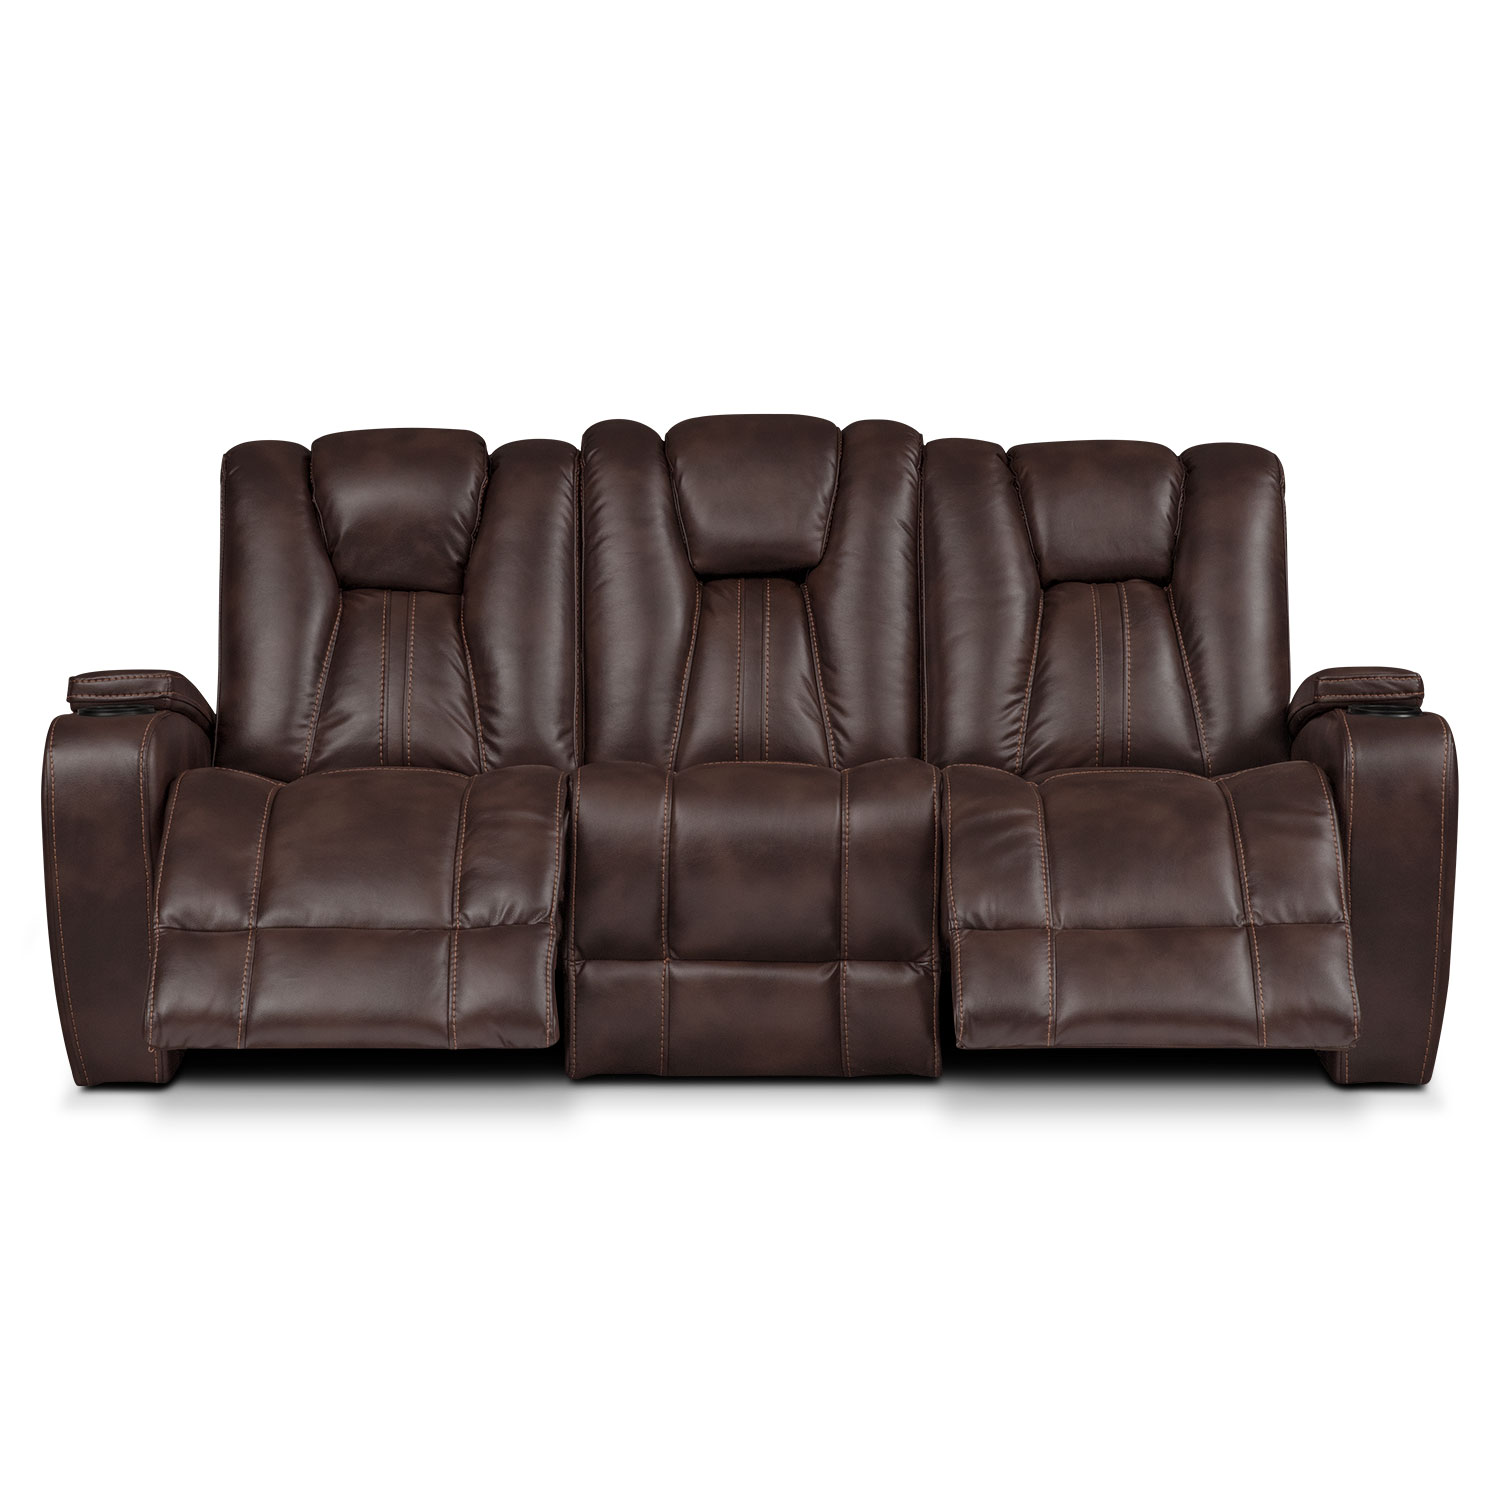 Incroyable Pulsar Dual Power Reclining Sofa   Brown